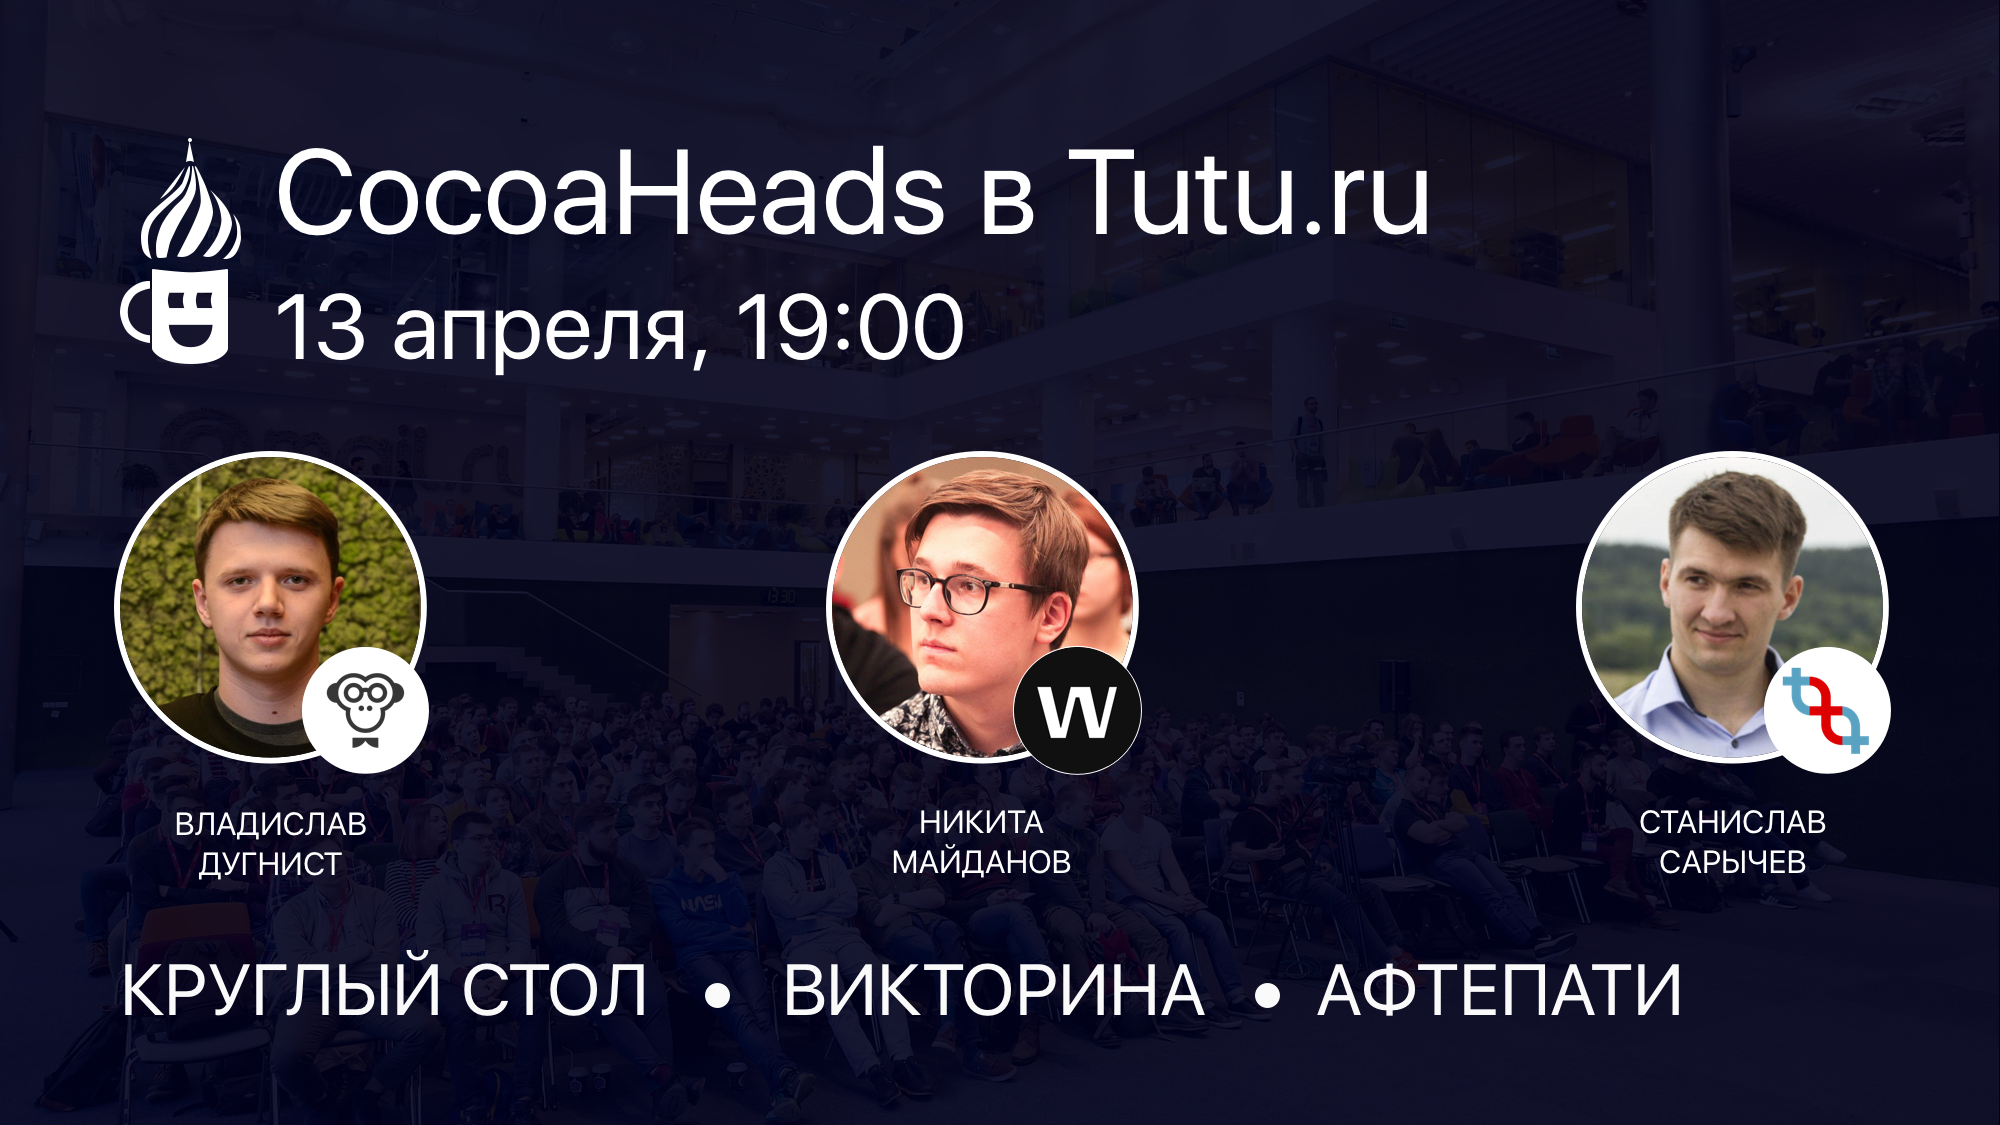 CocoaHeads April 1? 2018 from the office of Tutu.ru: video of performances